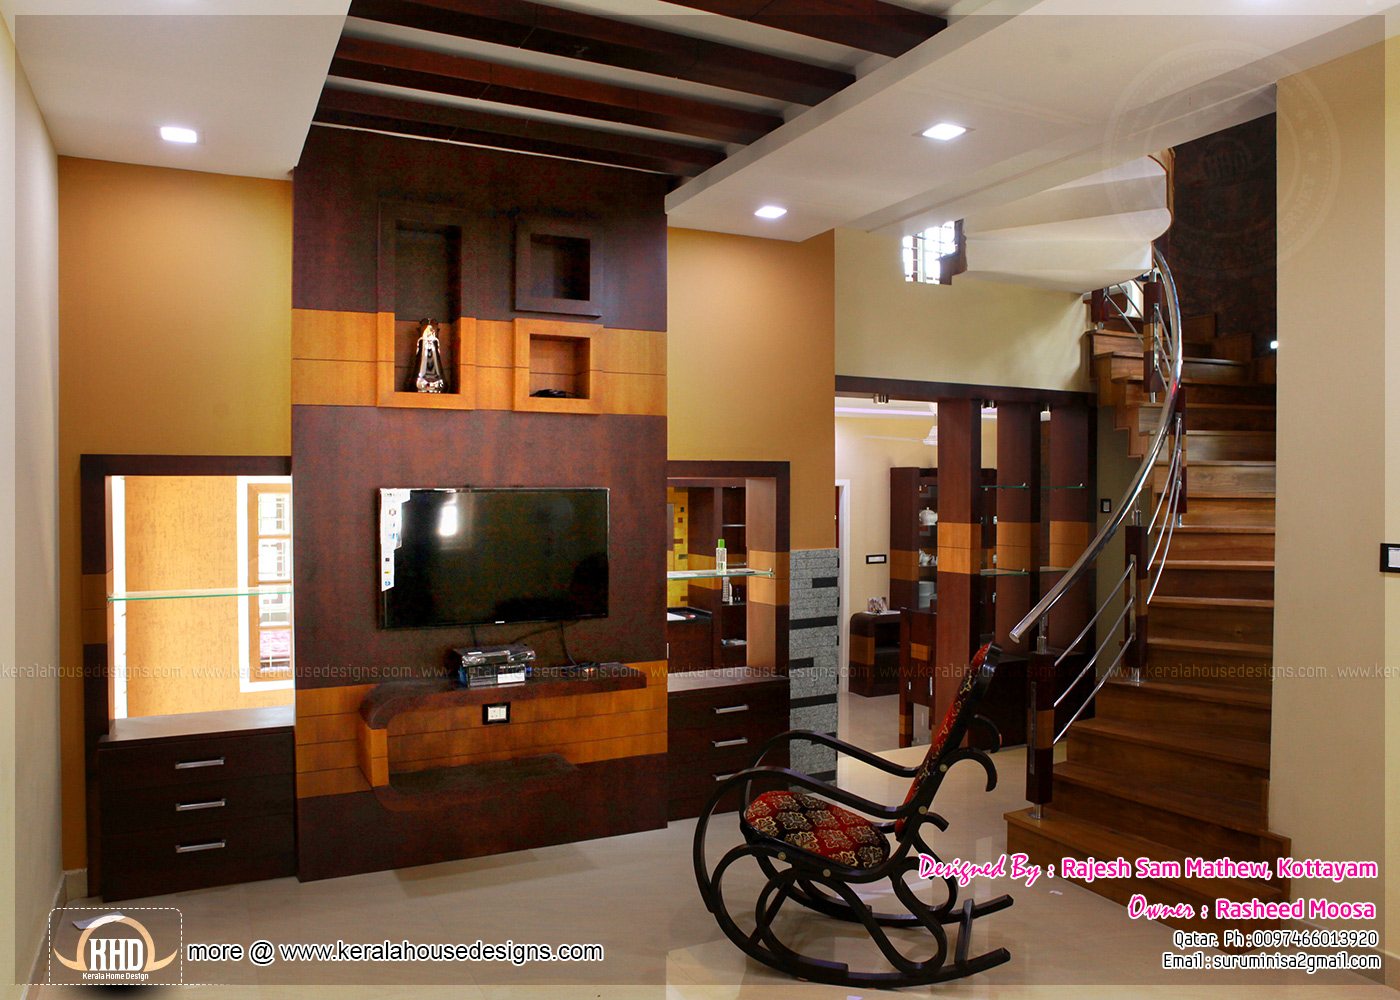 Kerala interior design with photos kerala home design for Simple interior design ideas for indian homes